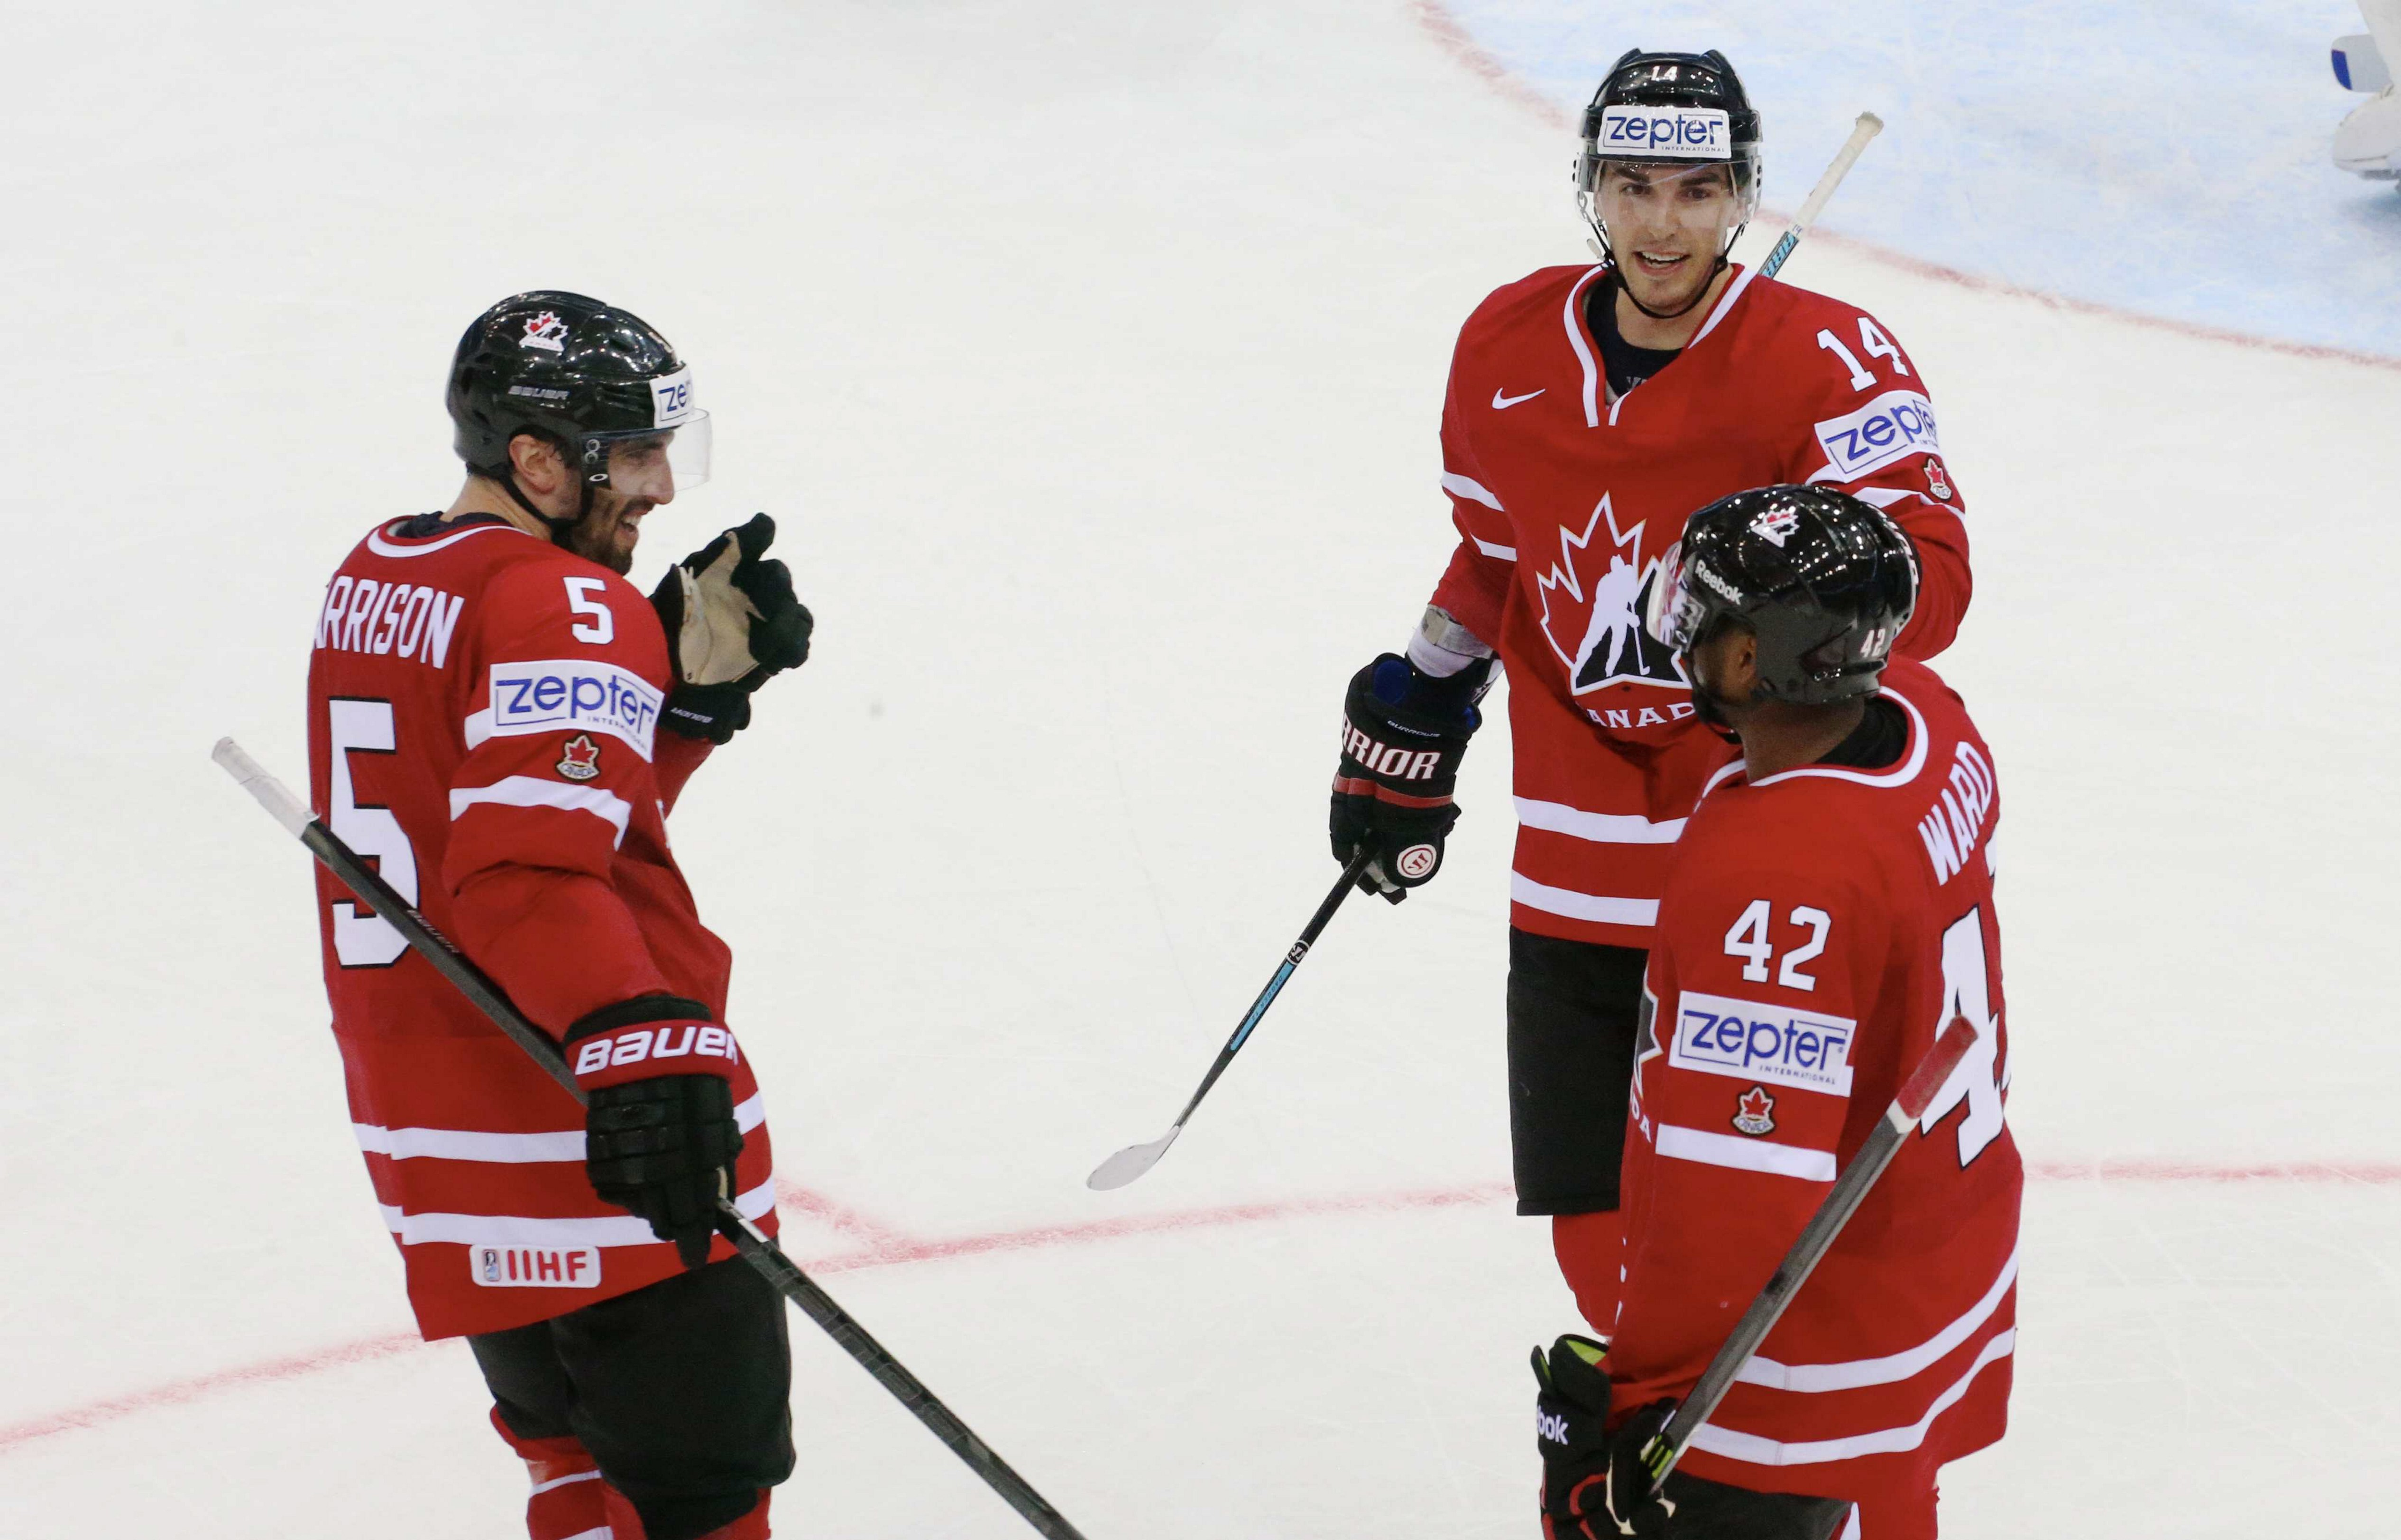 Ward retires from hockey, 2014 world championships